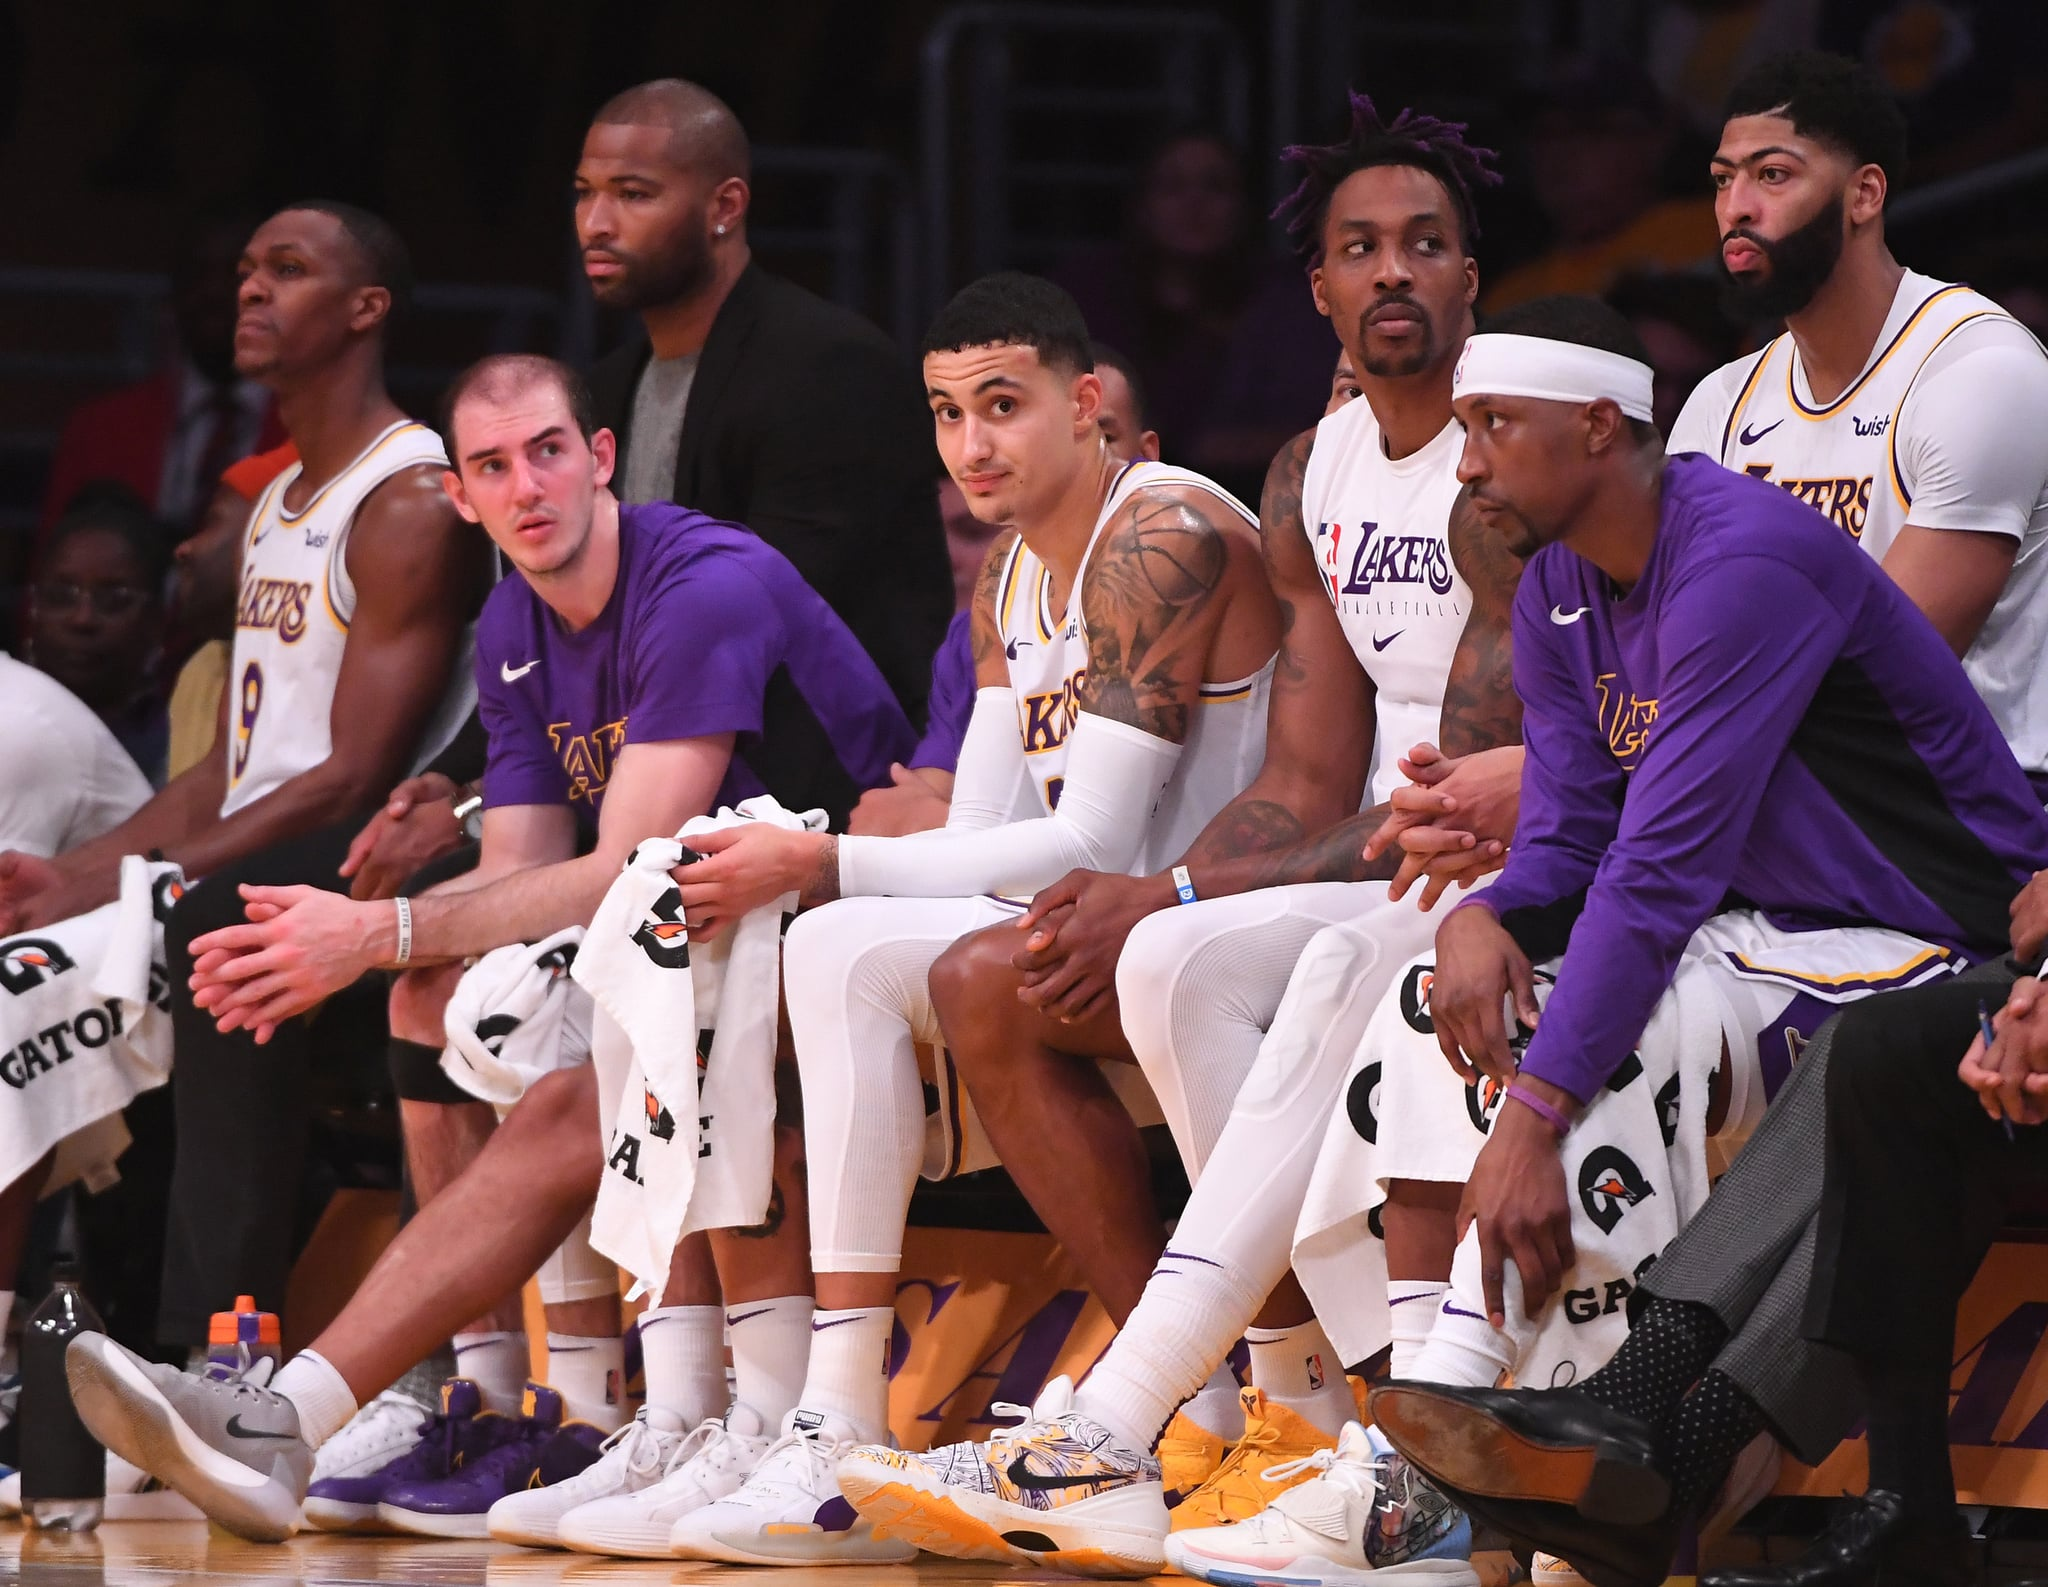 LOS ANGELES, CA - DECEMBER 22: Alex Caruso #4, Kyle Kuzma #0, Dwight Howard #39, Anthony Davis #3 and Kentavious Caldwell-Pope #1 of the Los Angeles Lakers sit on the bench in the fourth quarter of the game against the Denver Nuggets at Staples Center on December 22, 2019 in Los Angeles, California. NOTE TO USER: User expressly acknowledges and agrees that, by downloading and/or using this Photograph, user is consenting to the terms and conditions of the Getty Images License Agreement. (Photo by Jayne Kamin-Oncea/Getty Images)